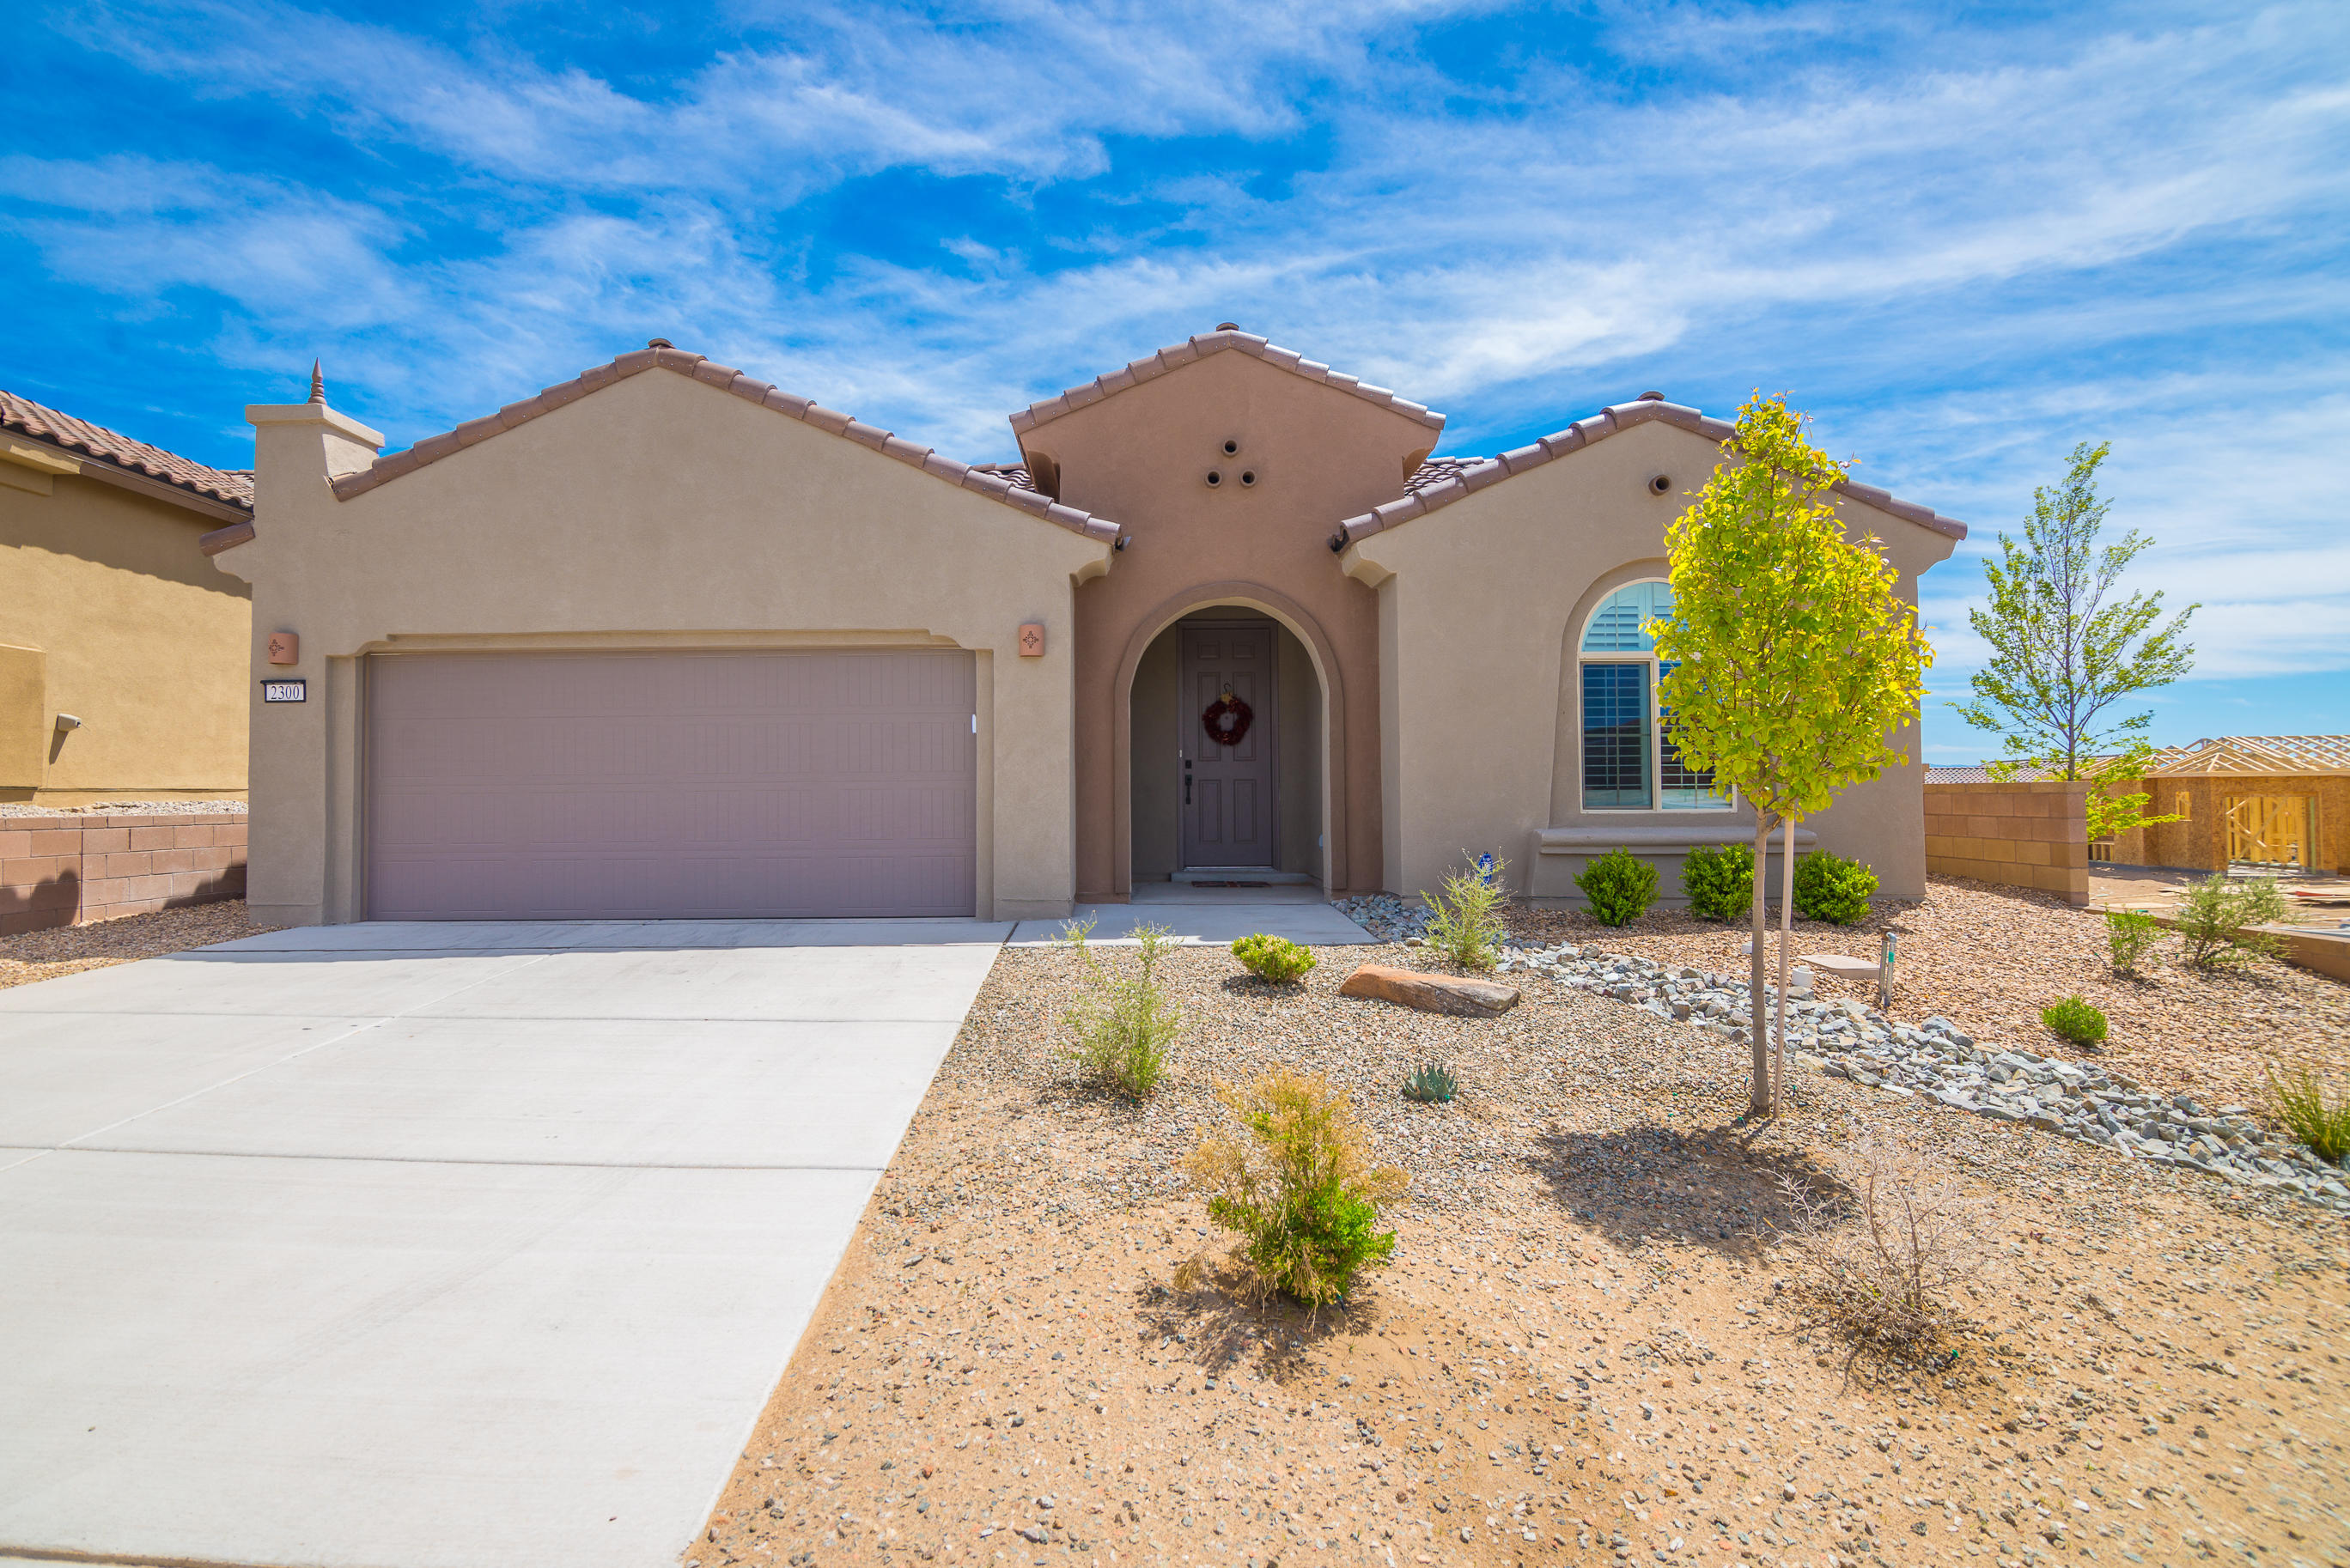 Northwest Albuquerque and Northwest Heights Homes for Sale -  Mountain View,  2300  Granite Mountain Loop